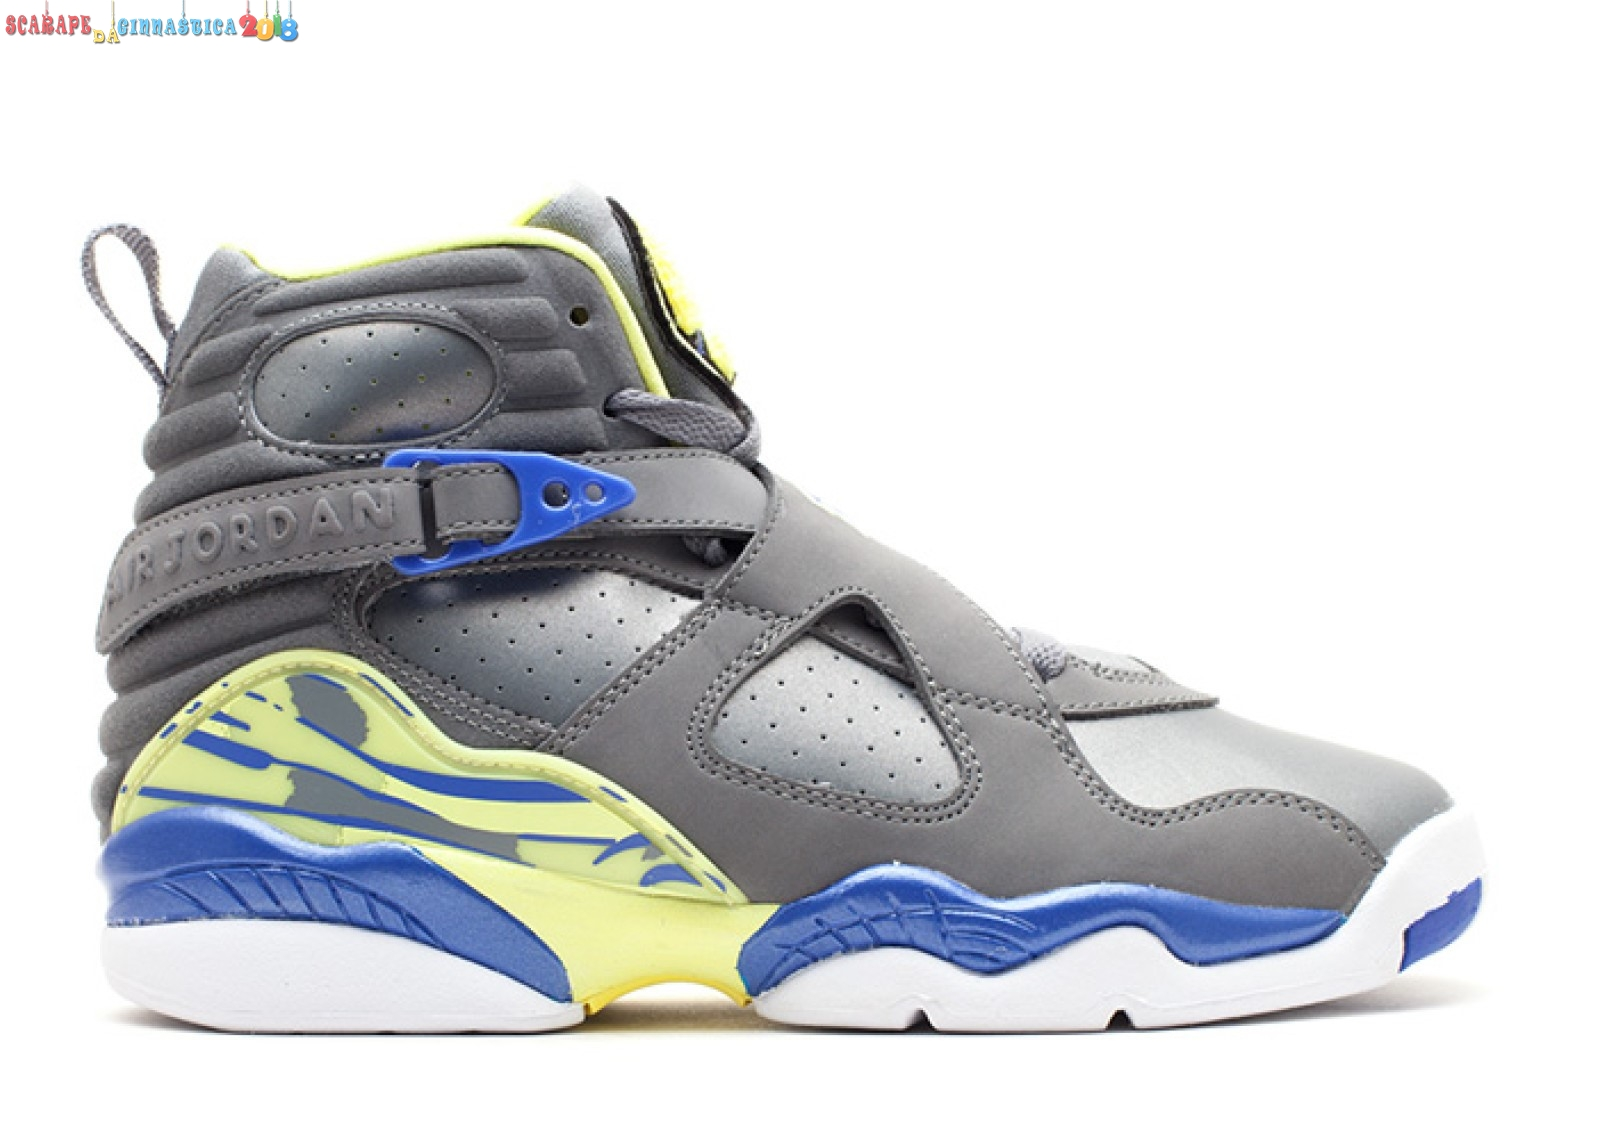 Replica Air Jordan 8 Retro (Gs) Gris Giallo (580528-038) Scarpe sportive